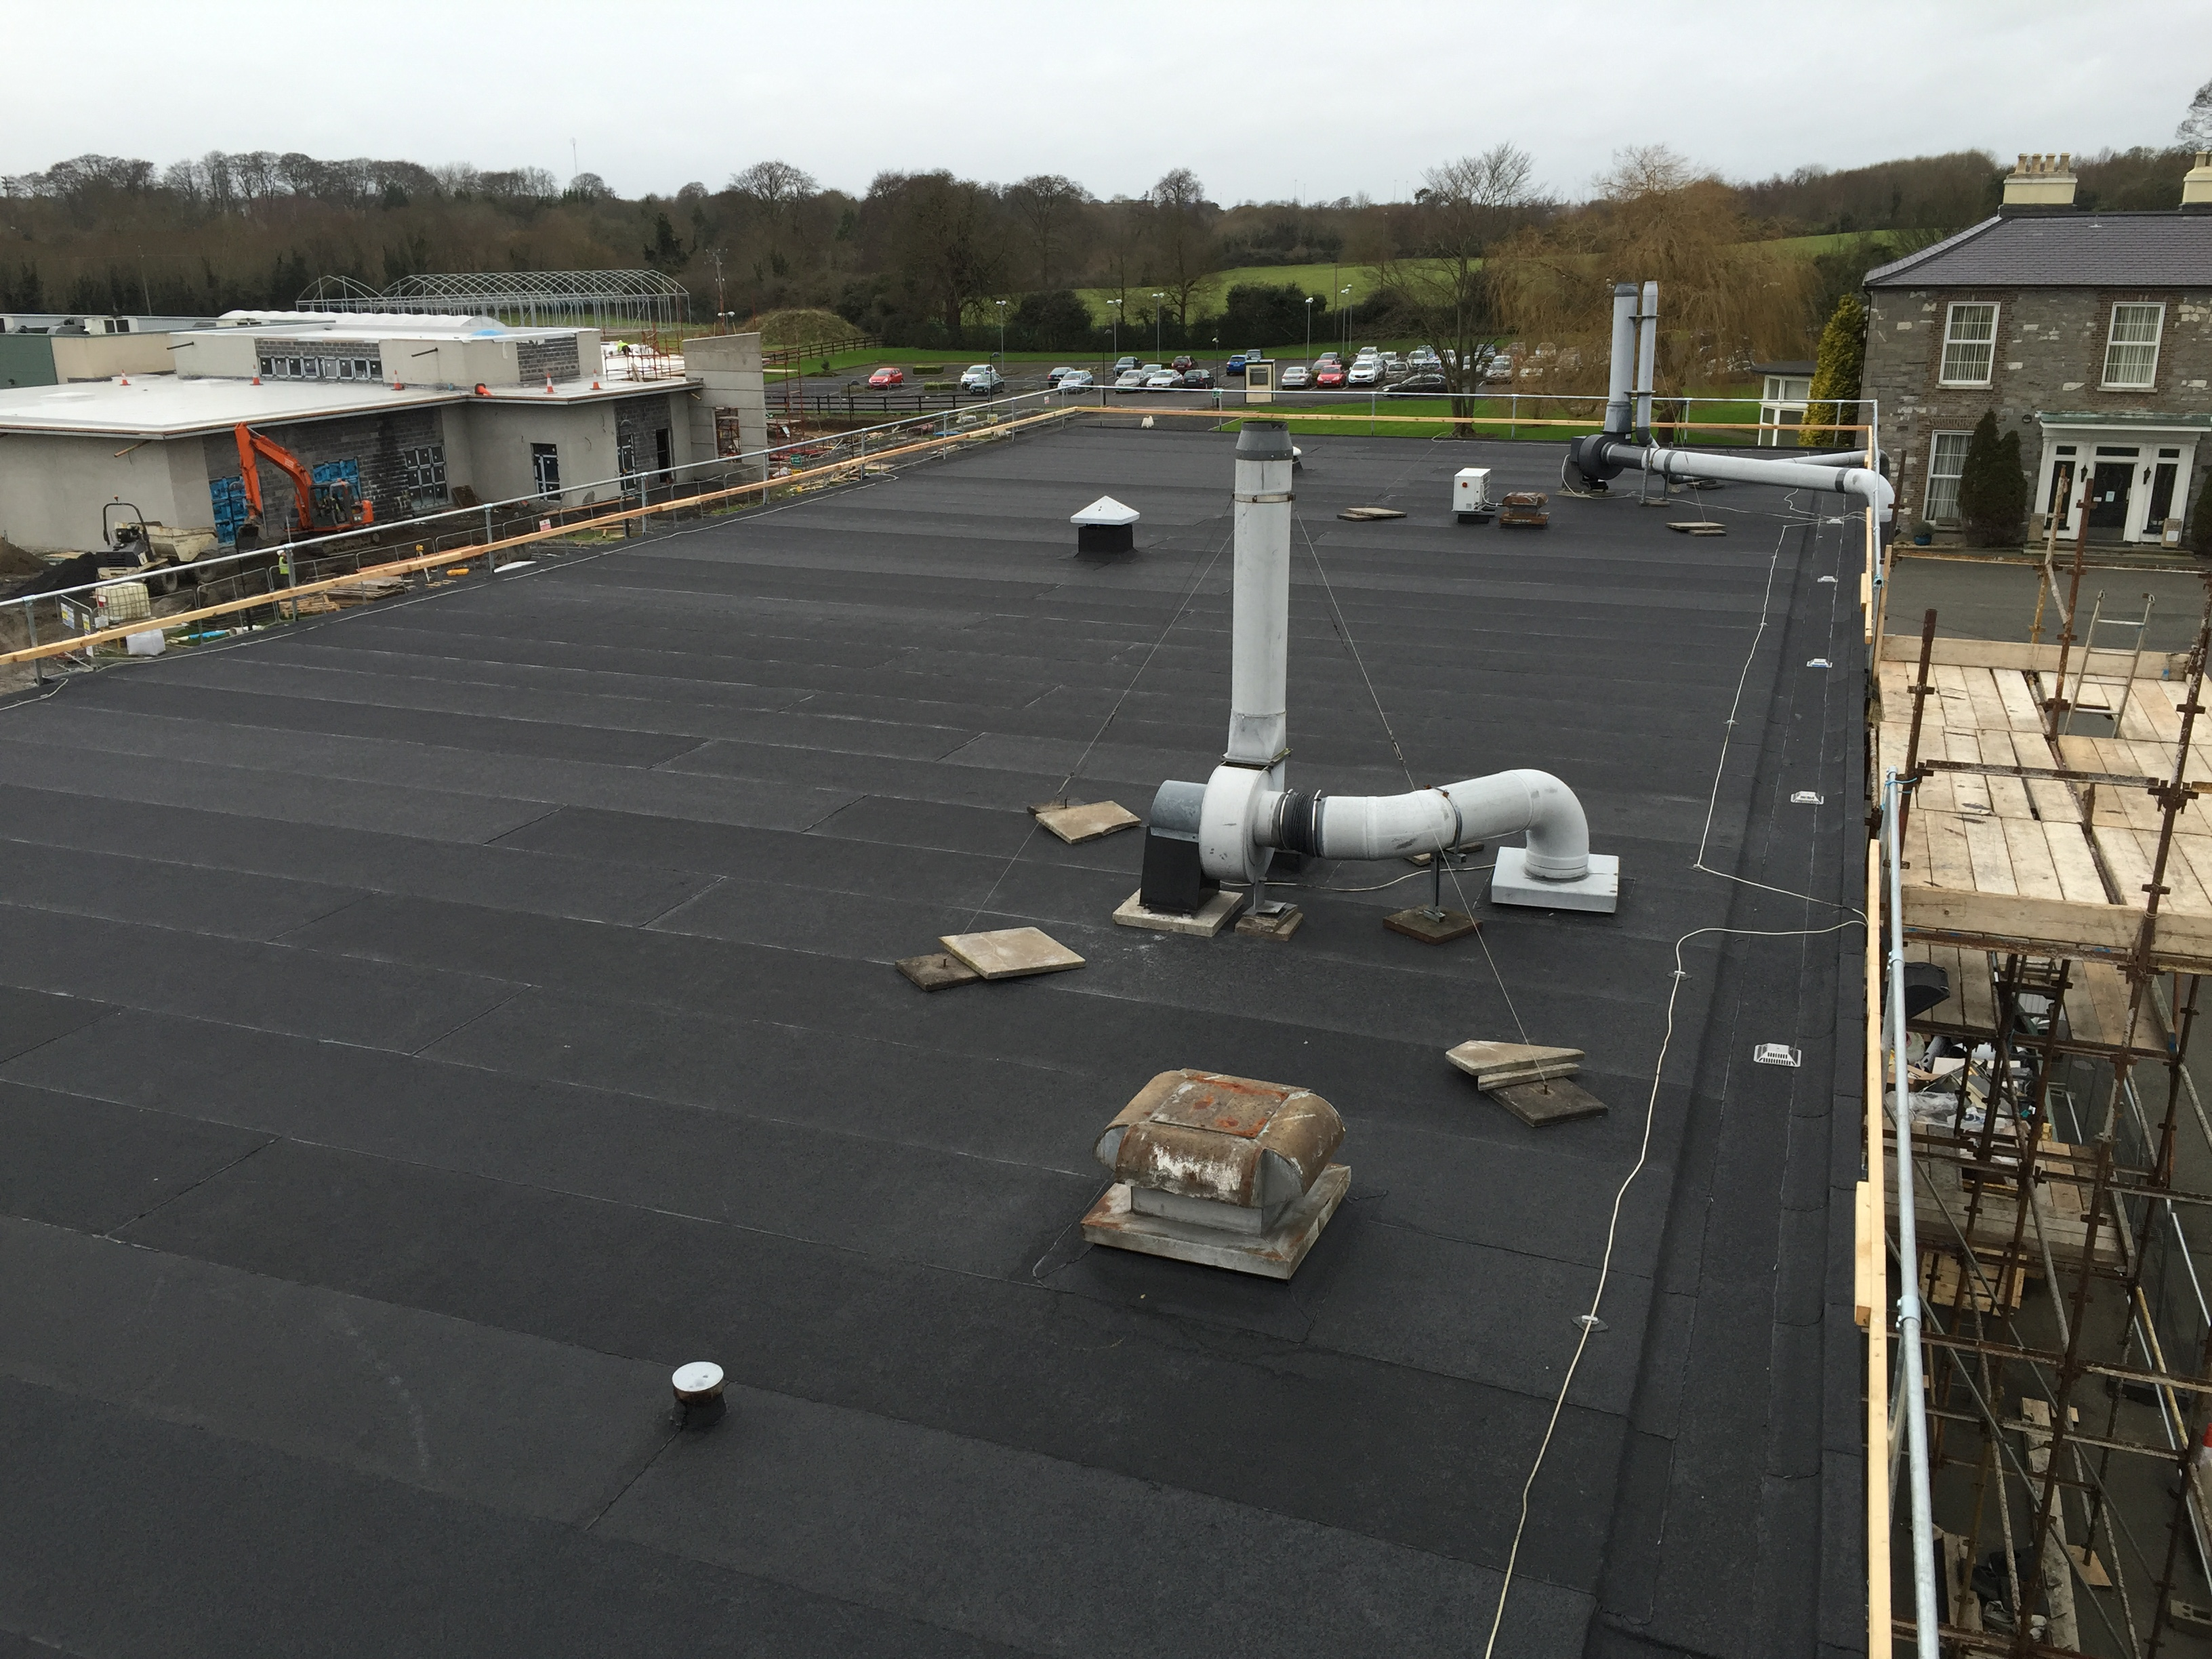 Teagasc Titan Roofing CJ Falconer Architects (21)